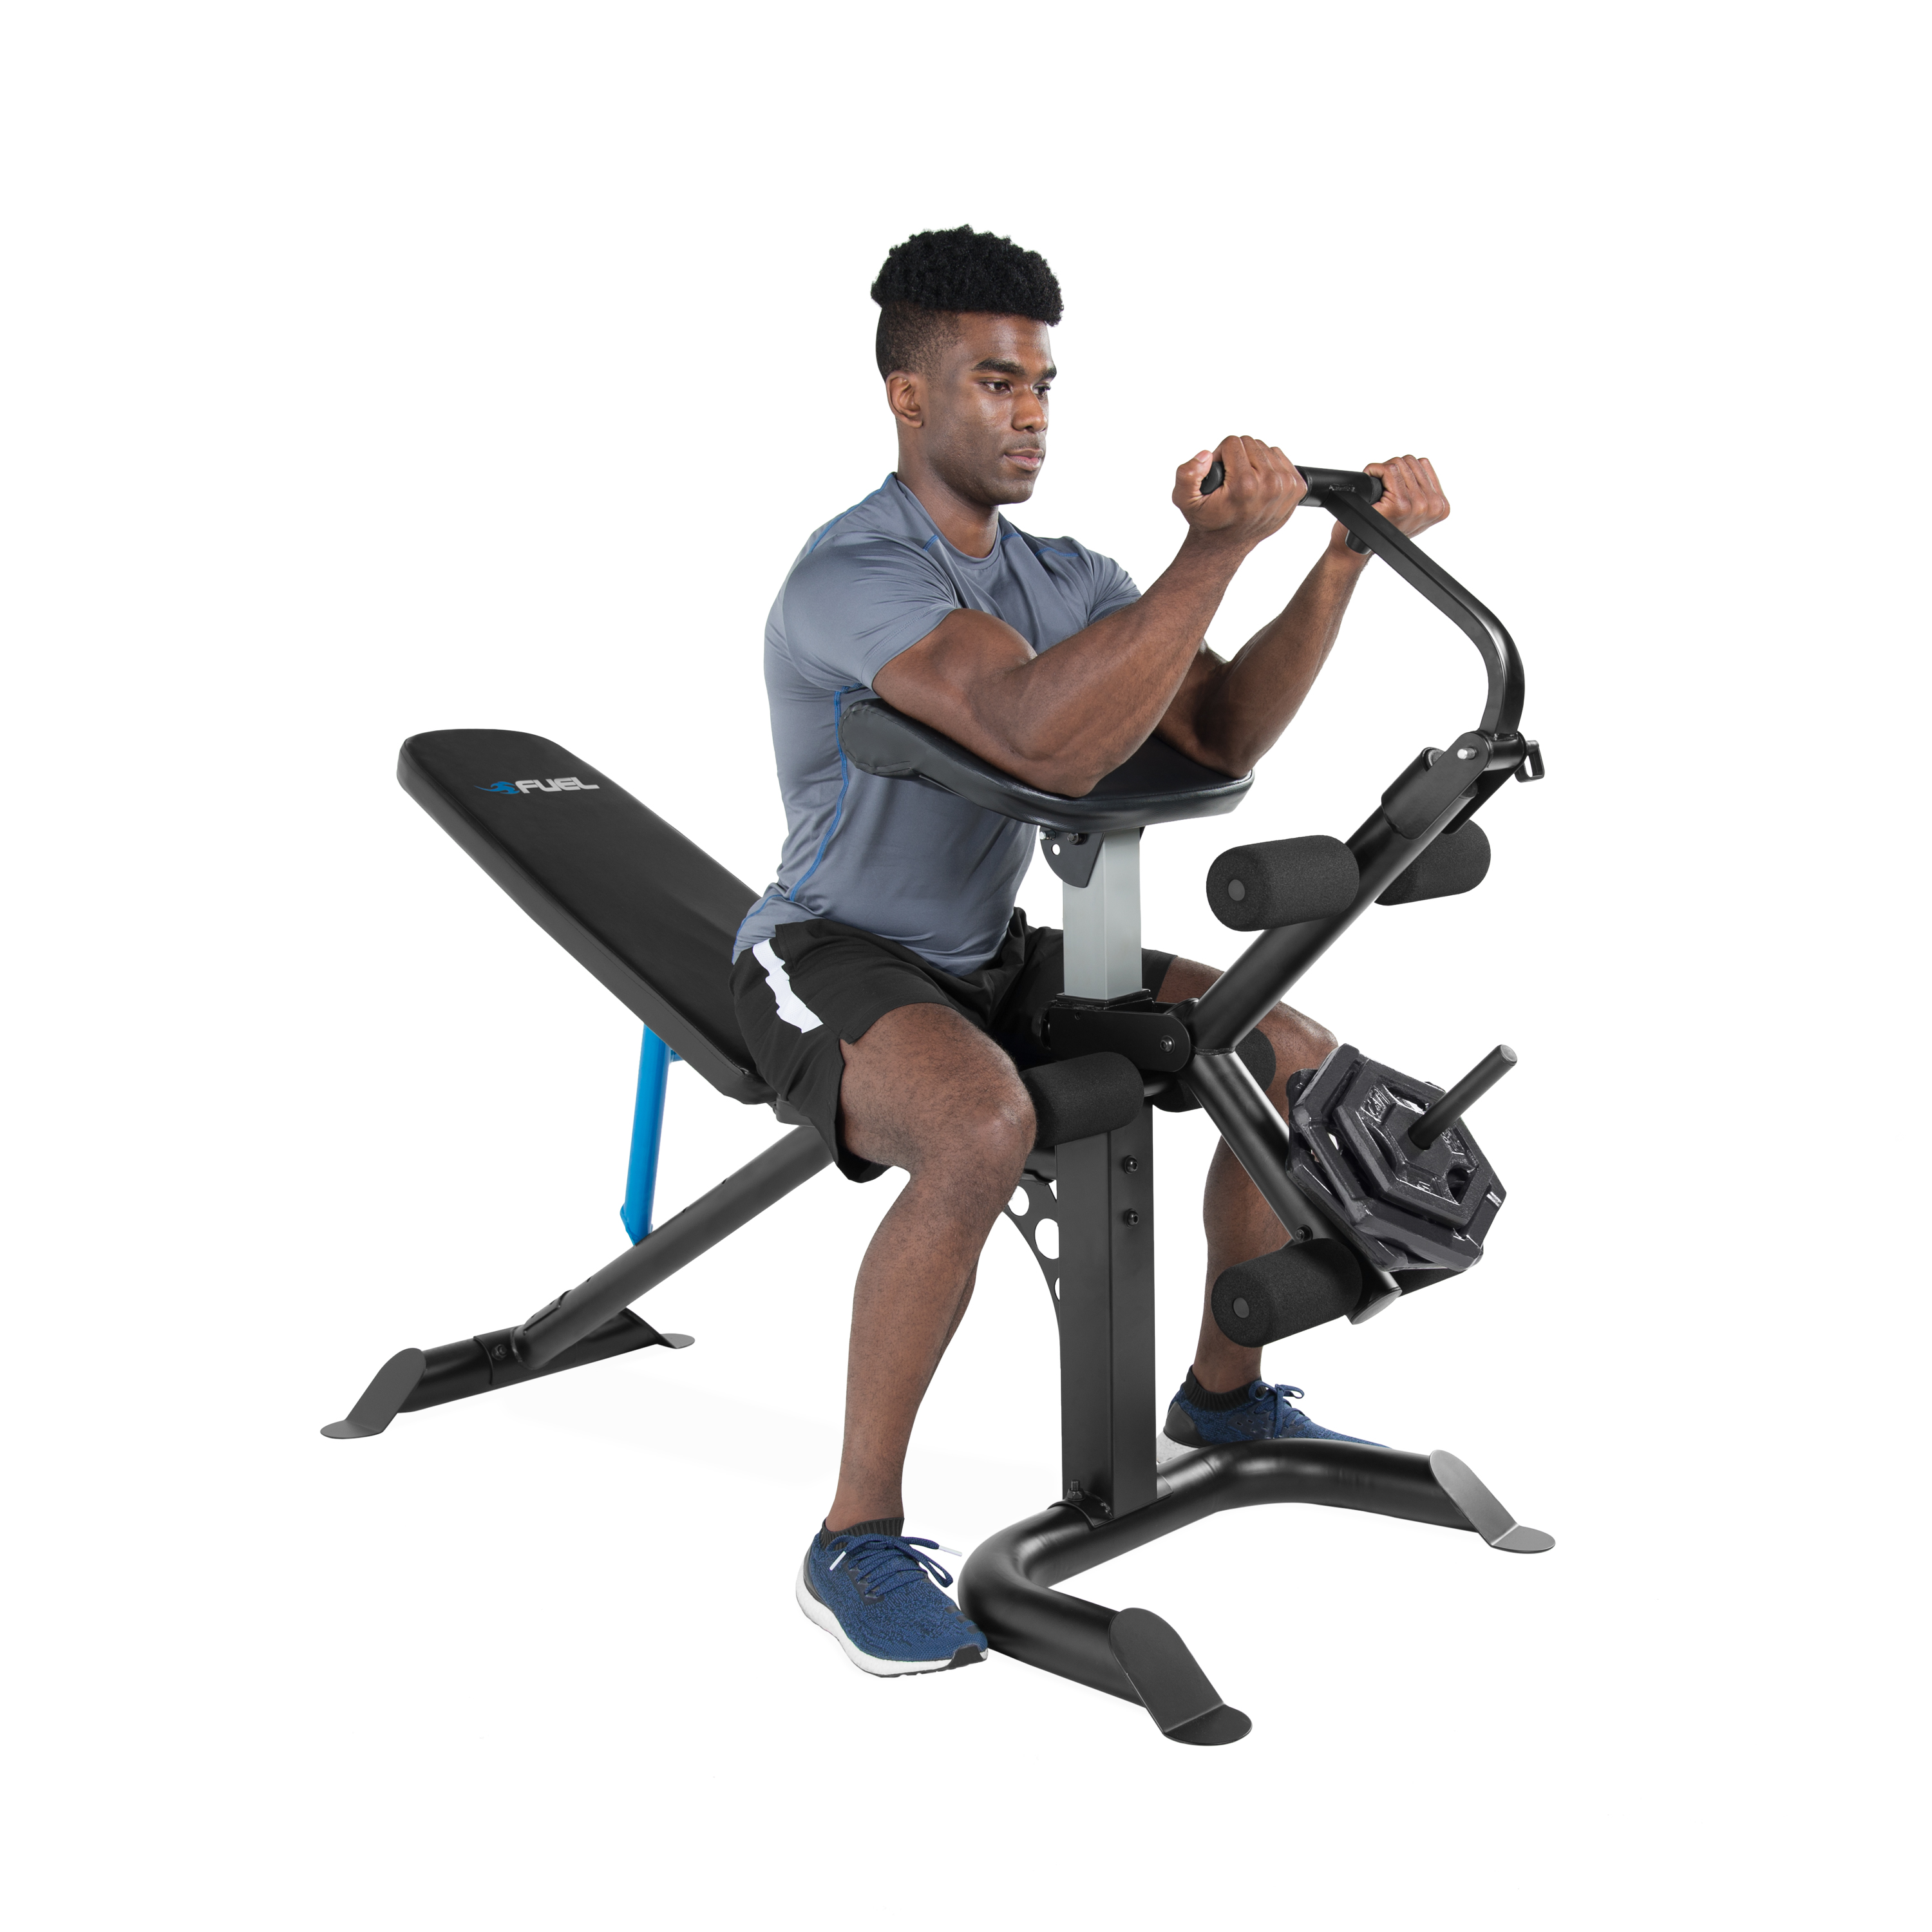 Super Details About Full Body Workout Machine Bench Press Arm Preacher Curl Leg Weight Lifting Gym Pdpeps Interior Chair Design Pdpepsorg